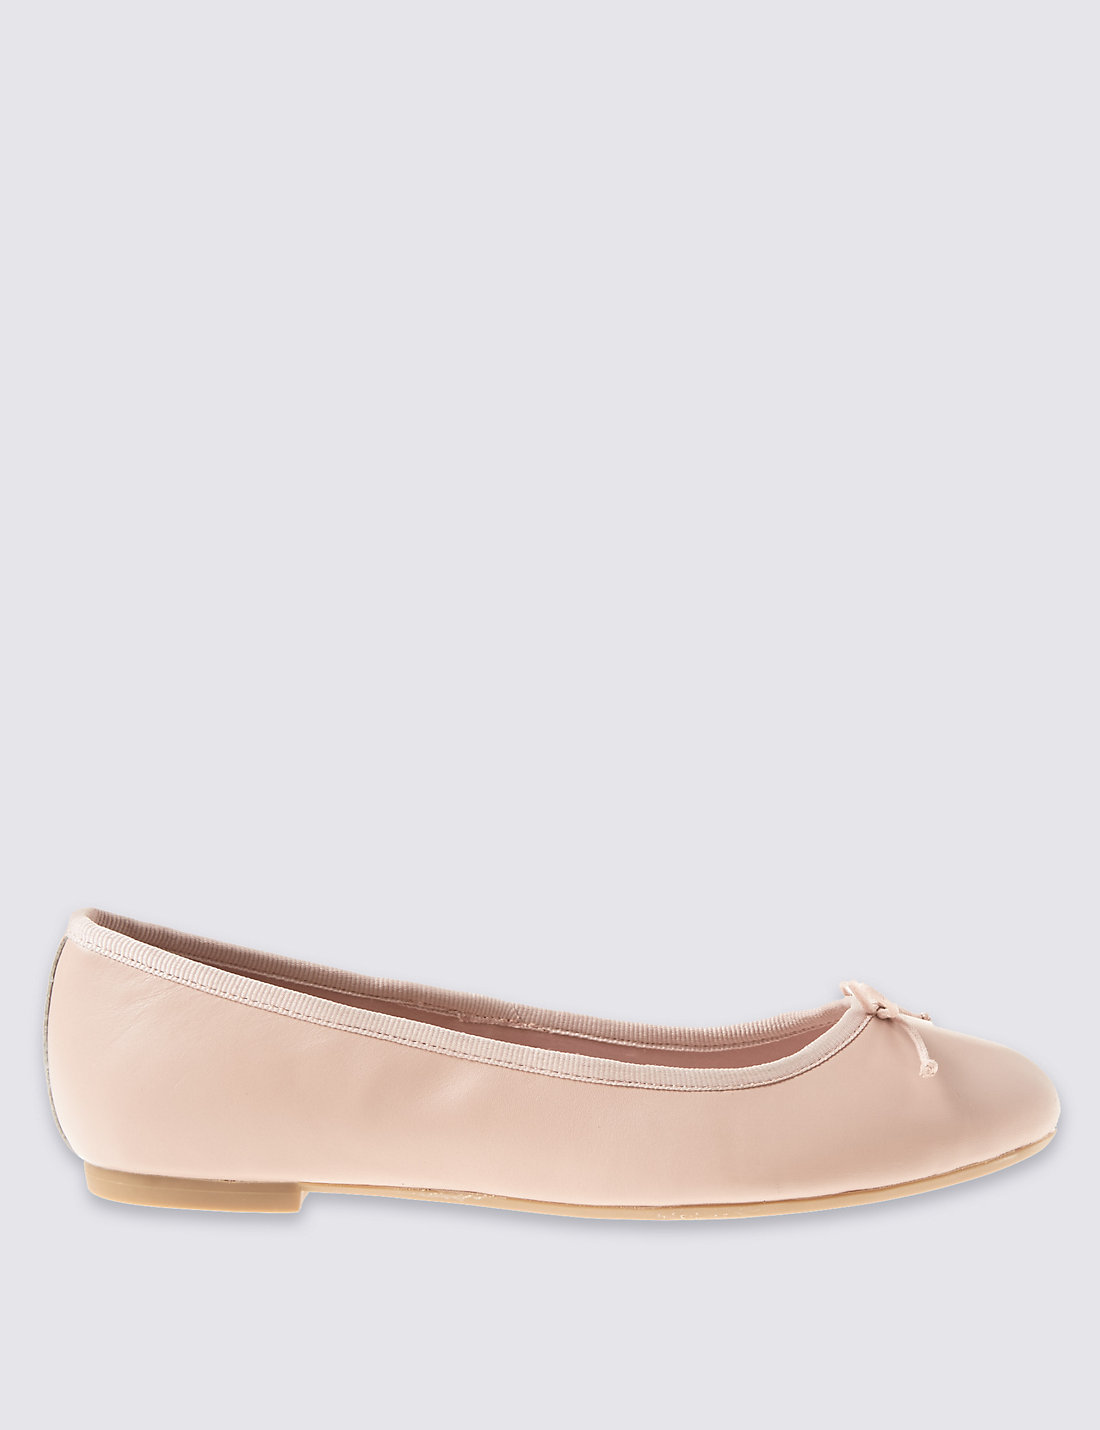 Ballerian pumps- a stylish and comfortable footwear